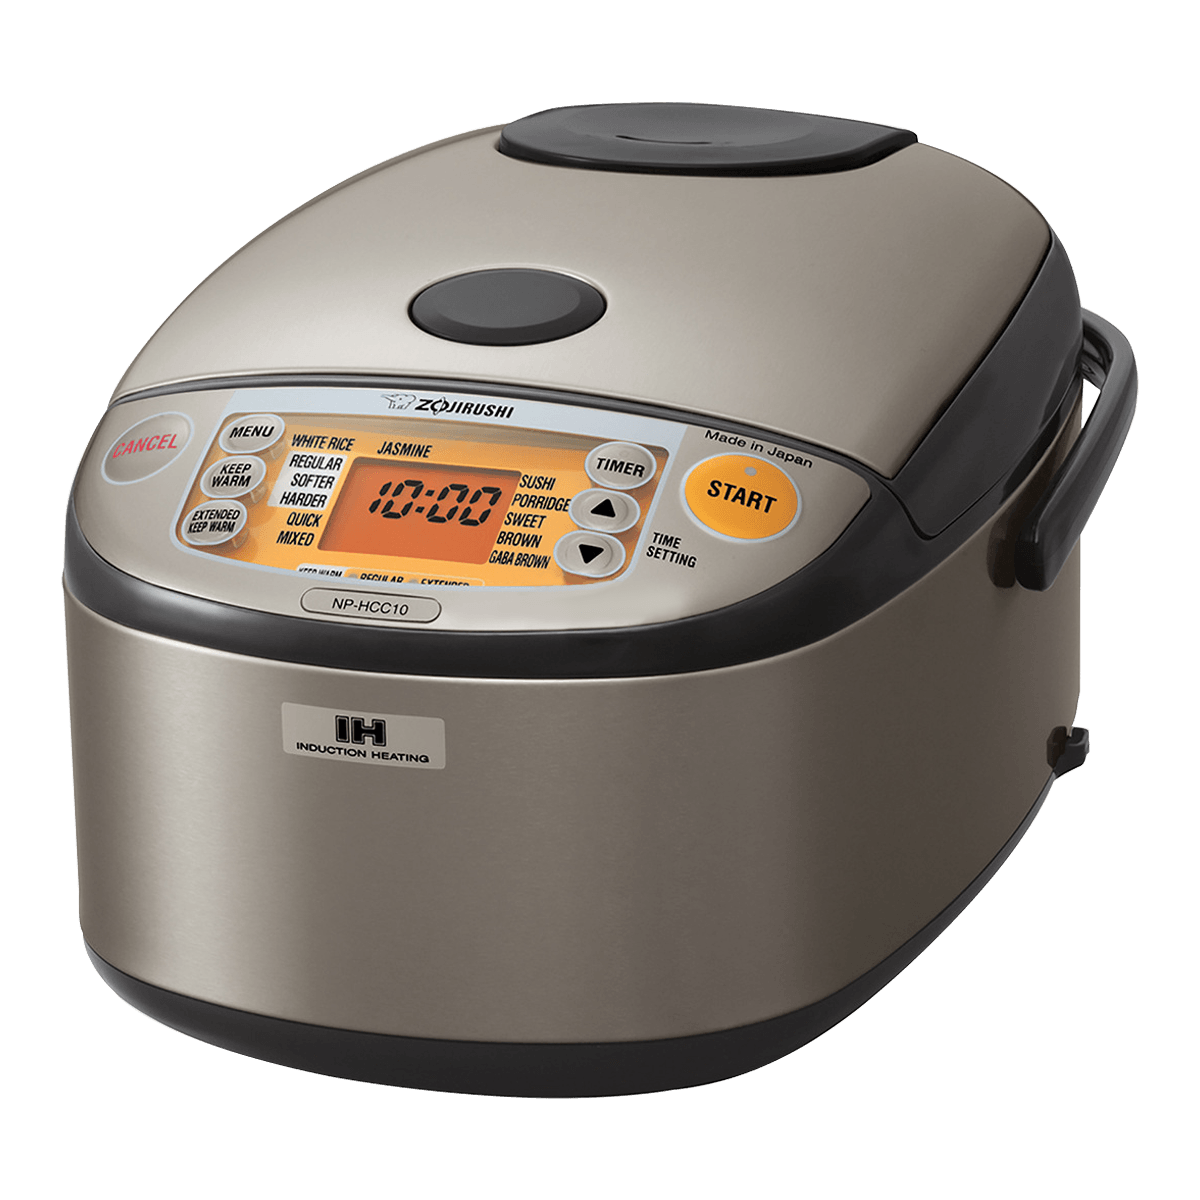 Yamibuy.com:Customer reviews:Induction Heating System Rice Cooker And Warmer, 1L, 5.5 Cup, Stainless Dark Gray, NP-HCC10, Made In Japan, 120 Volts